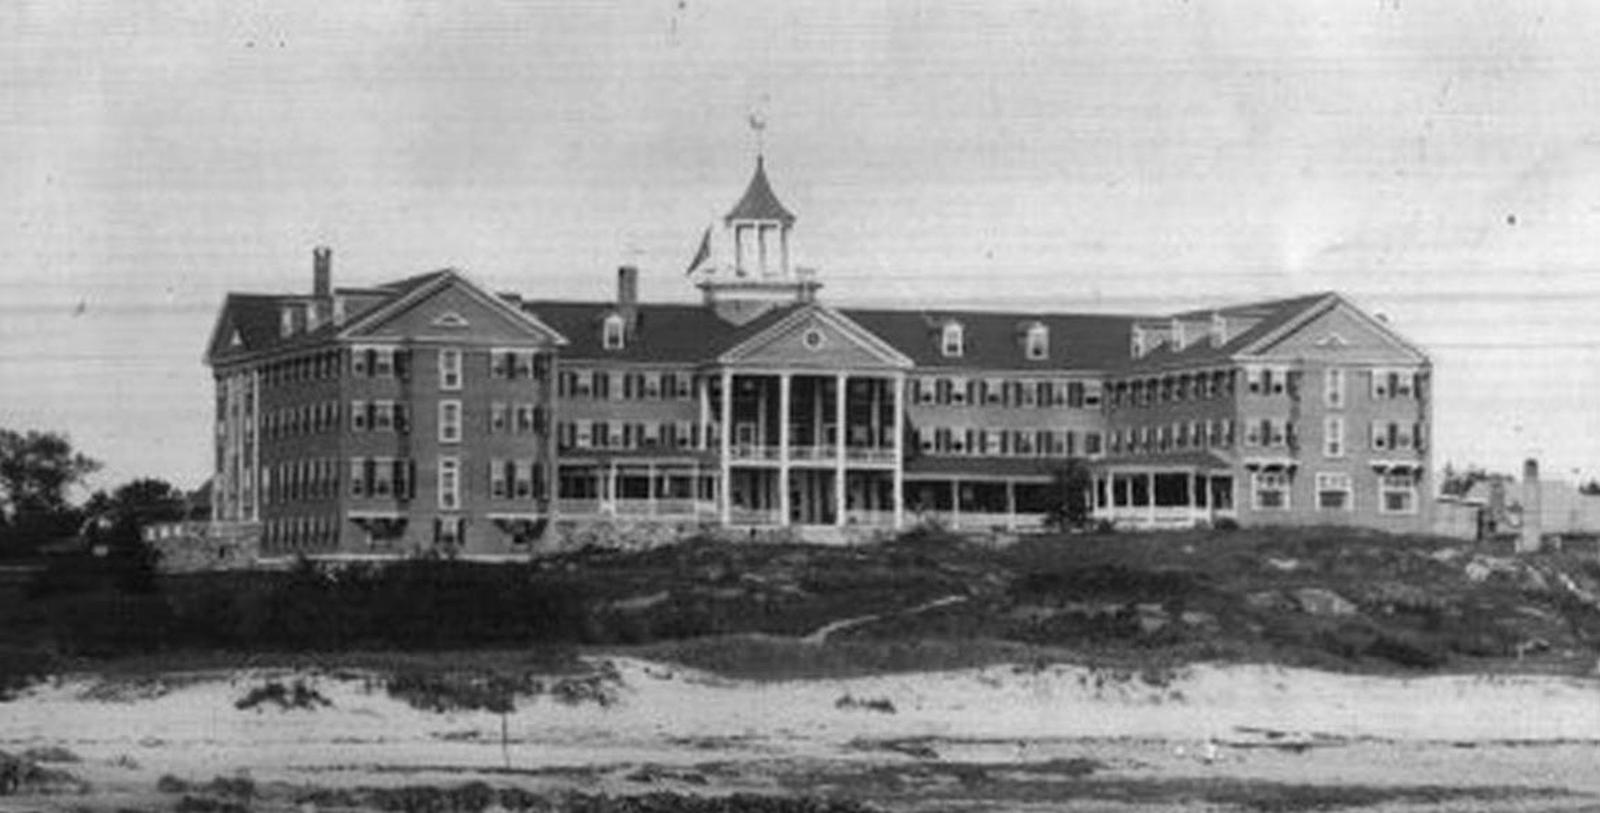 Historical Image of The Colony Hotel, 1914, Member of Historic Hotels of America, in Kennebunkport, Maine, Discover